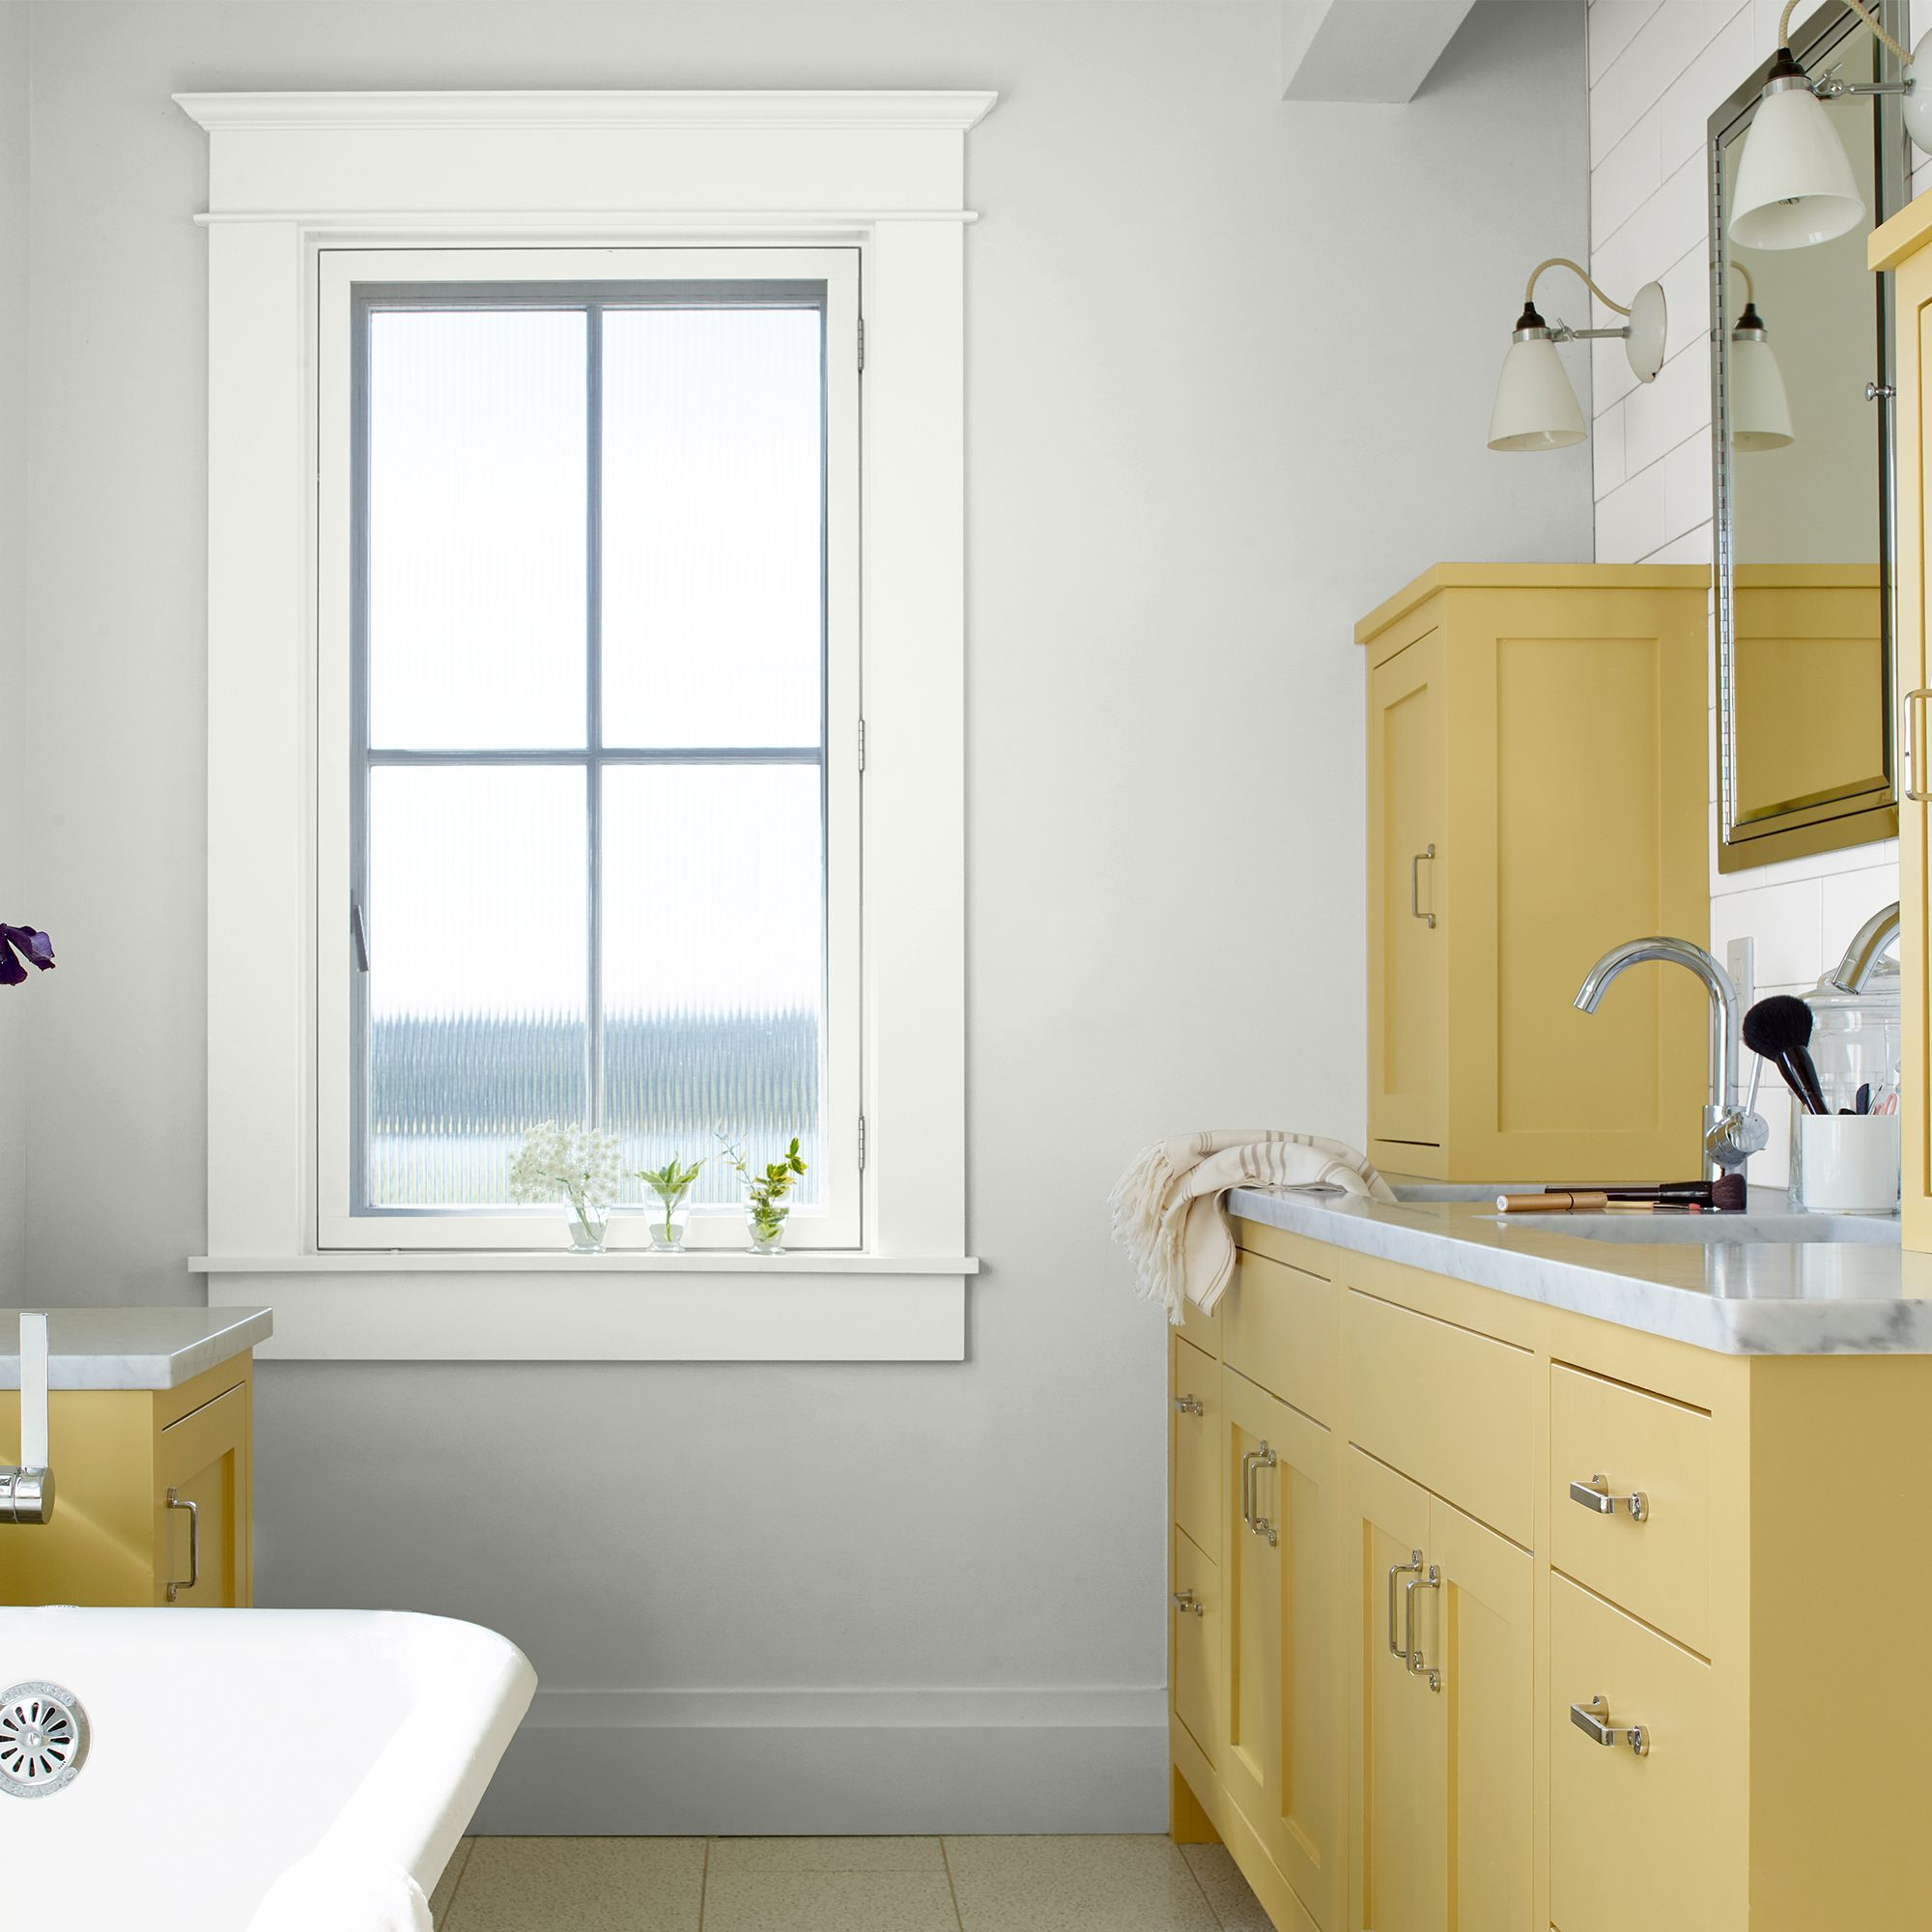 Bathroom with Yellow Cabinets